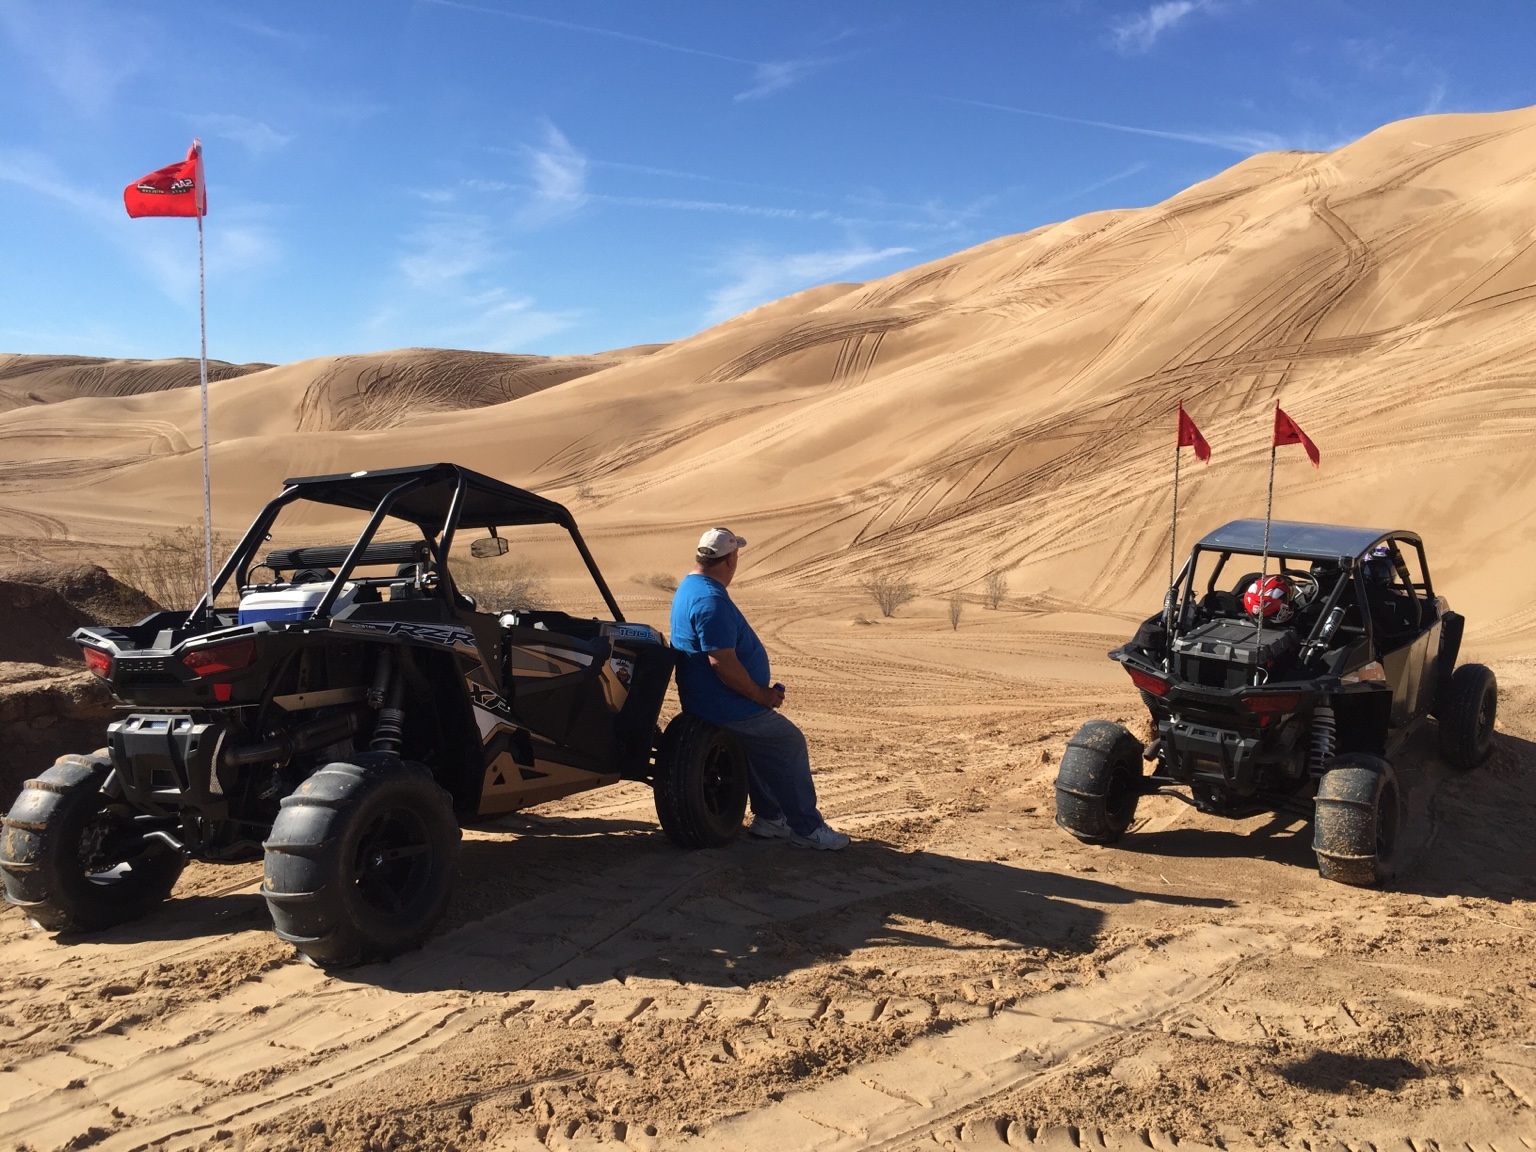 GLAMIS Dunes ChristmasNew Years Page - Glamis dunes weather